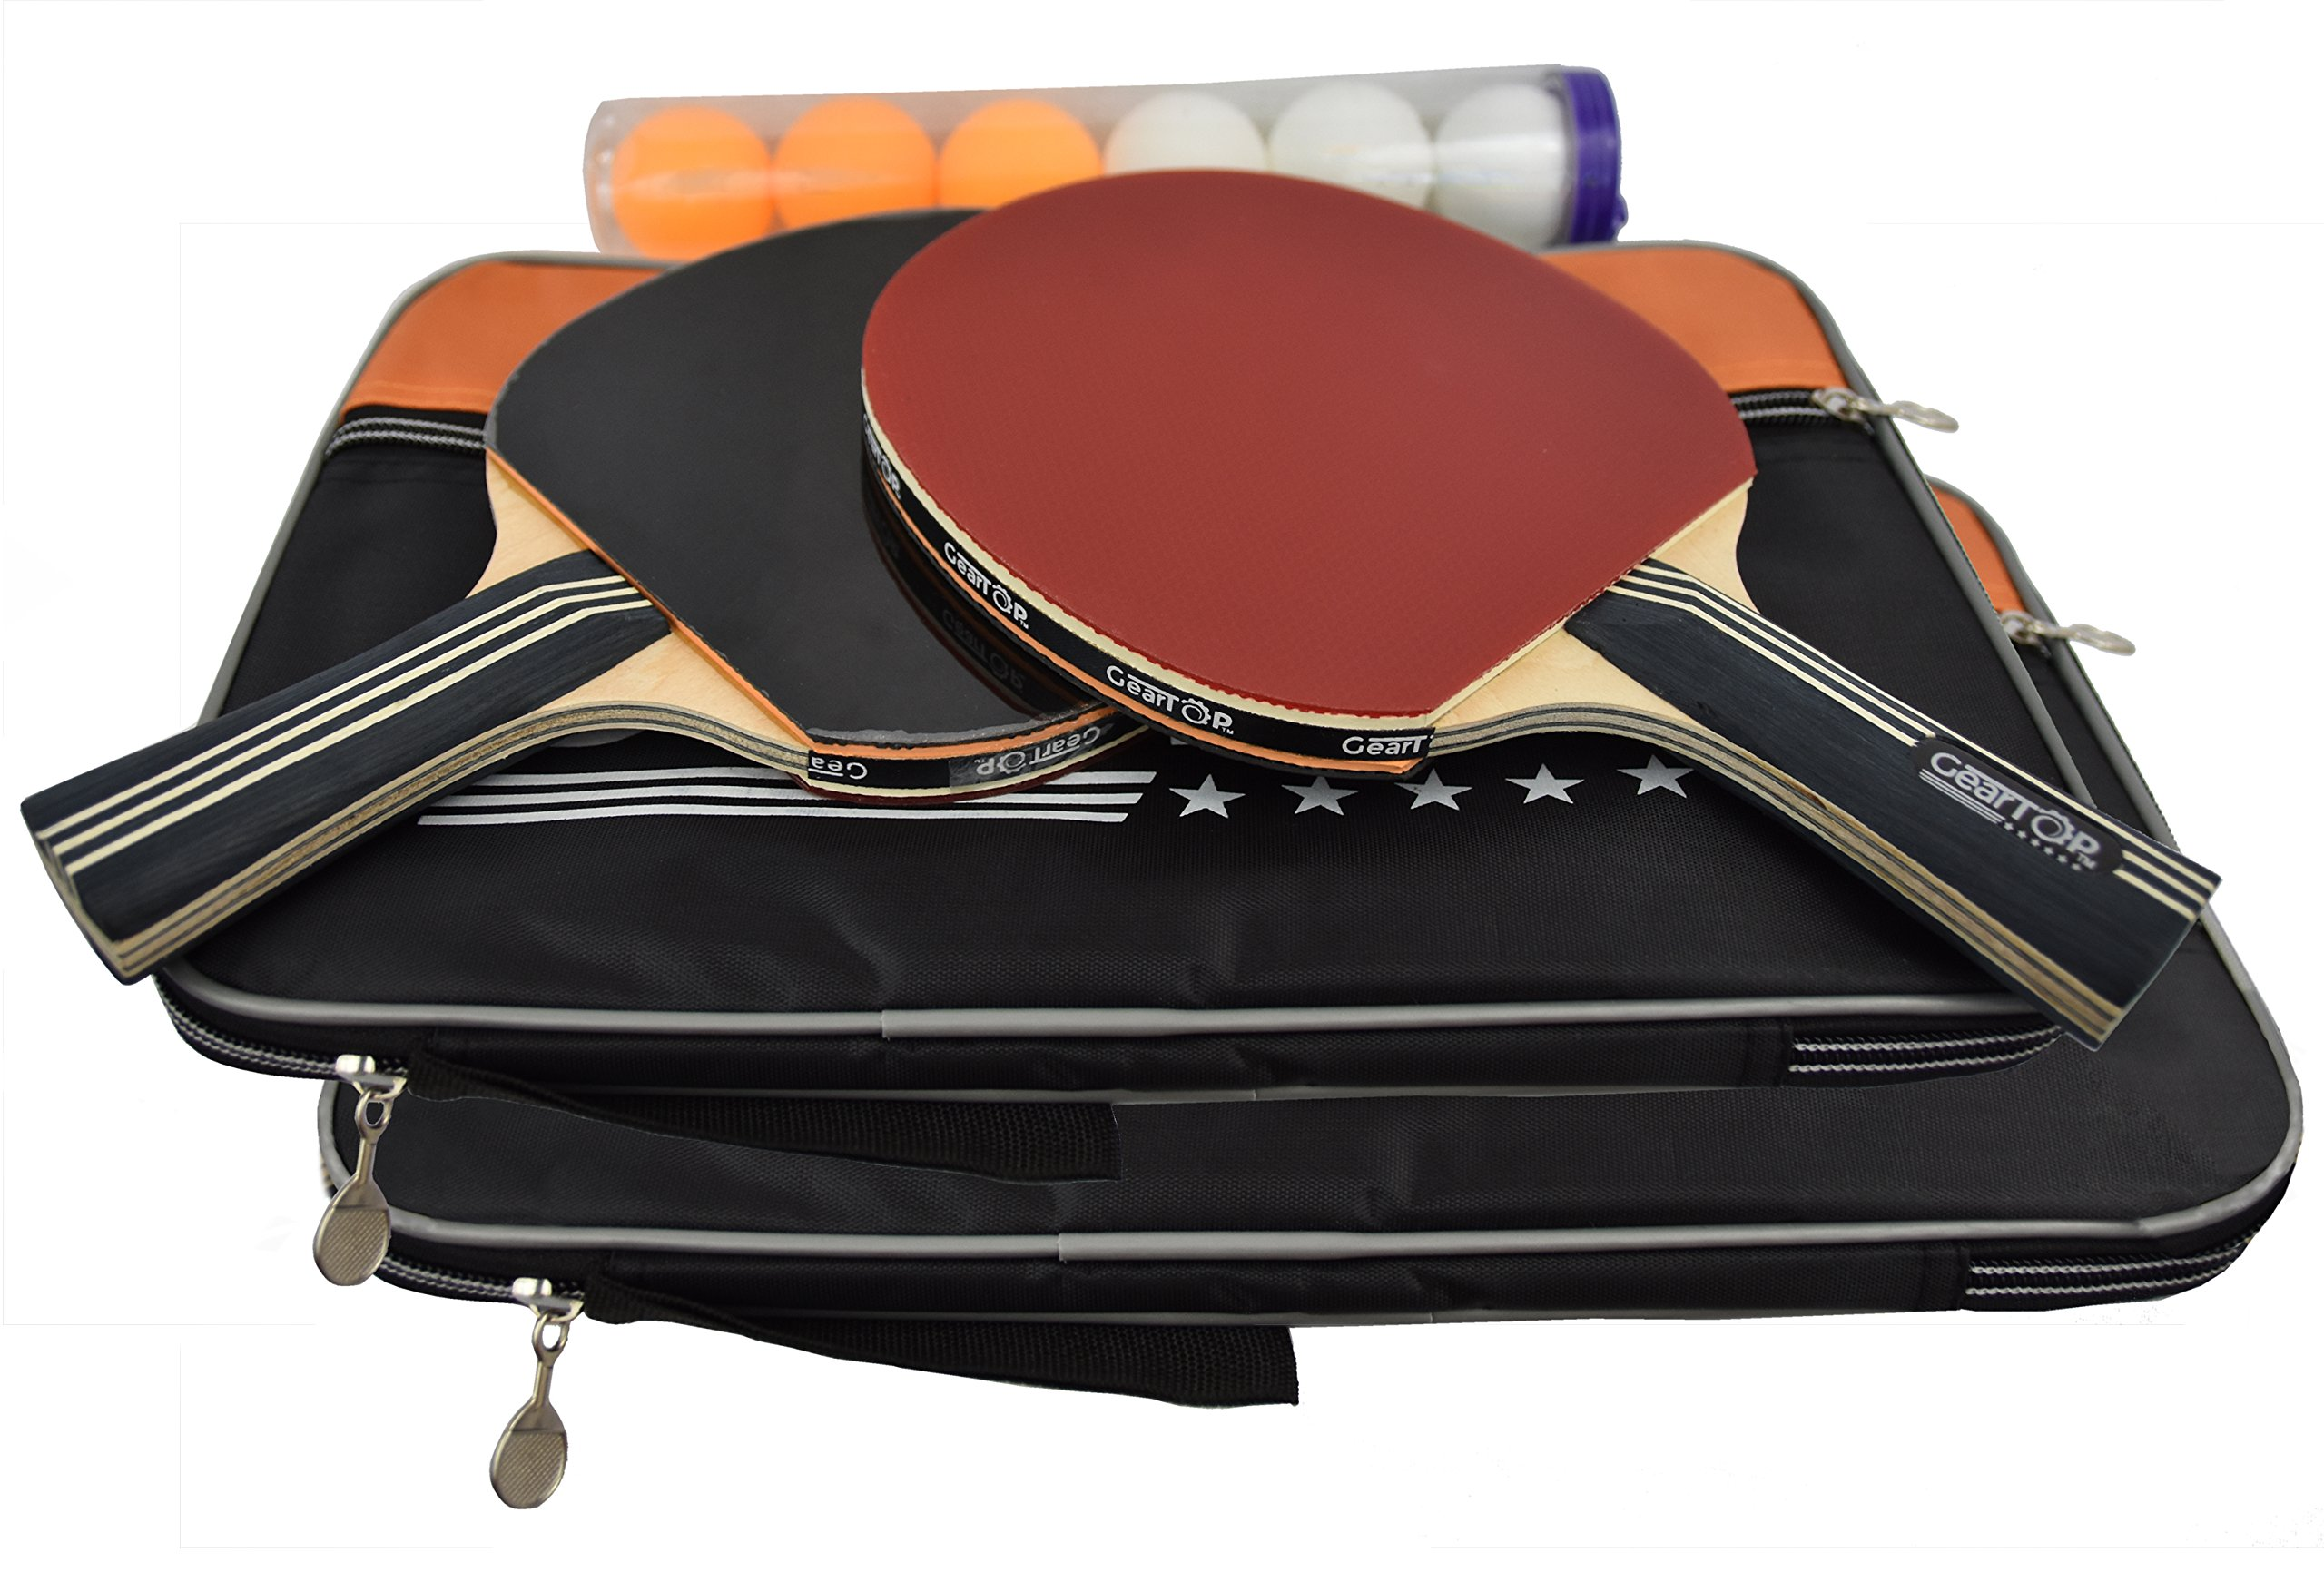 GearTOP Table Tennis Set, Pack of 2 Premium Paddles Rackets and 6 Ping Pong Balls. Ideal for Beginners and Professionals, On-The-Go Bundle